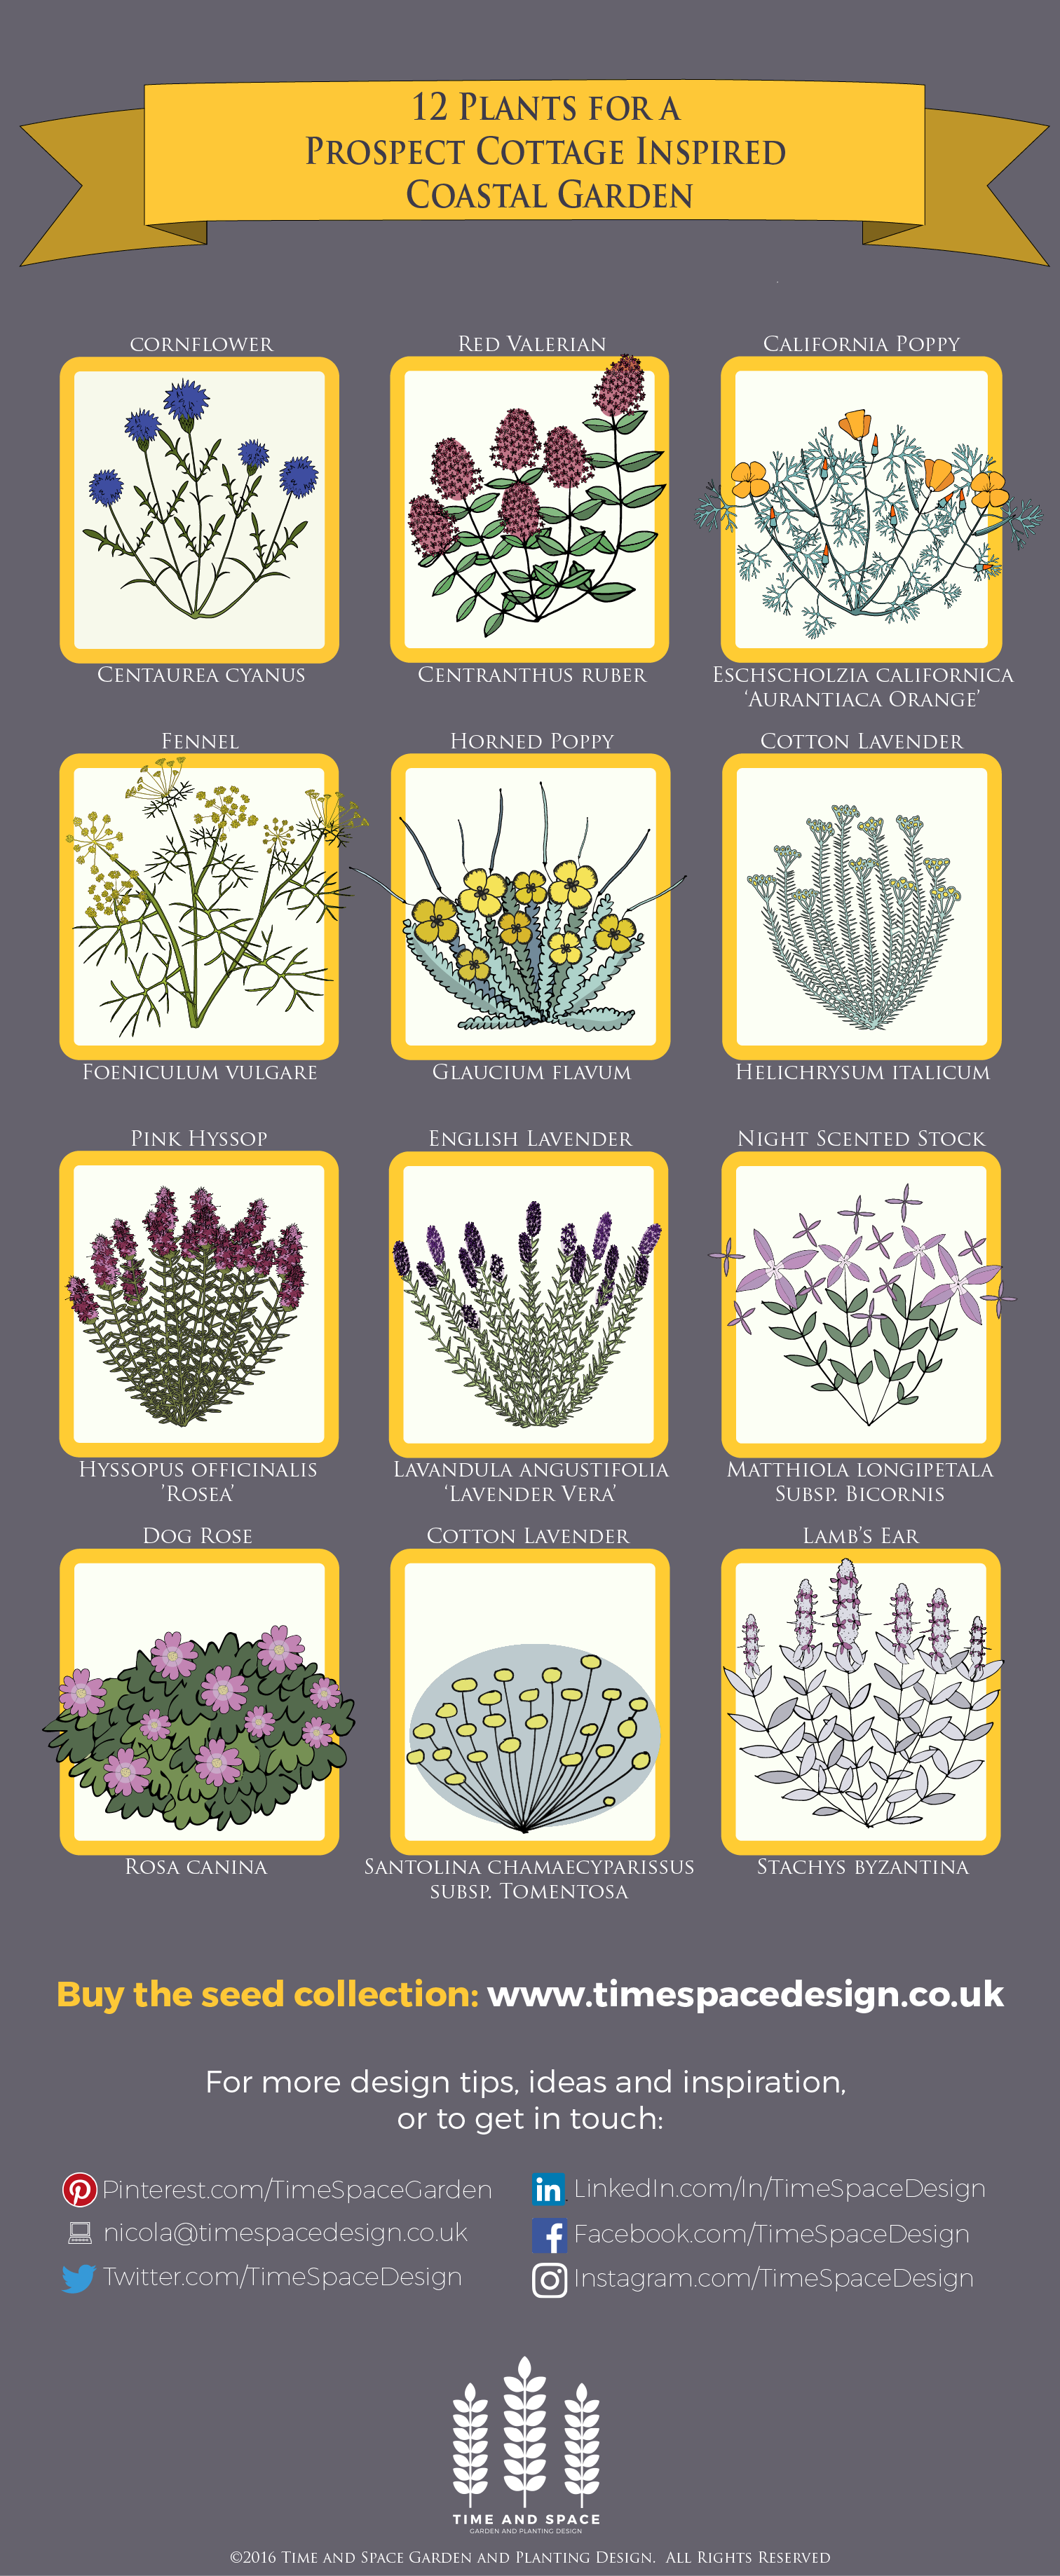 12 Plants for a Prospect Cottage Inspired Coastal Garden